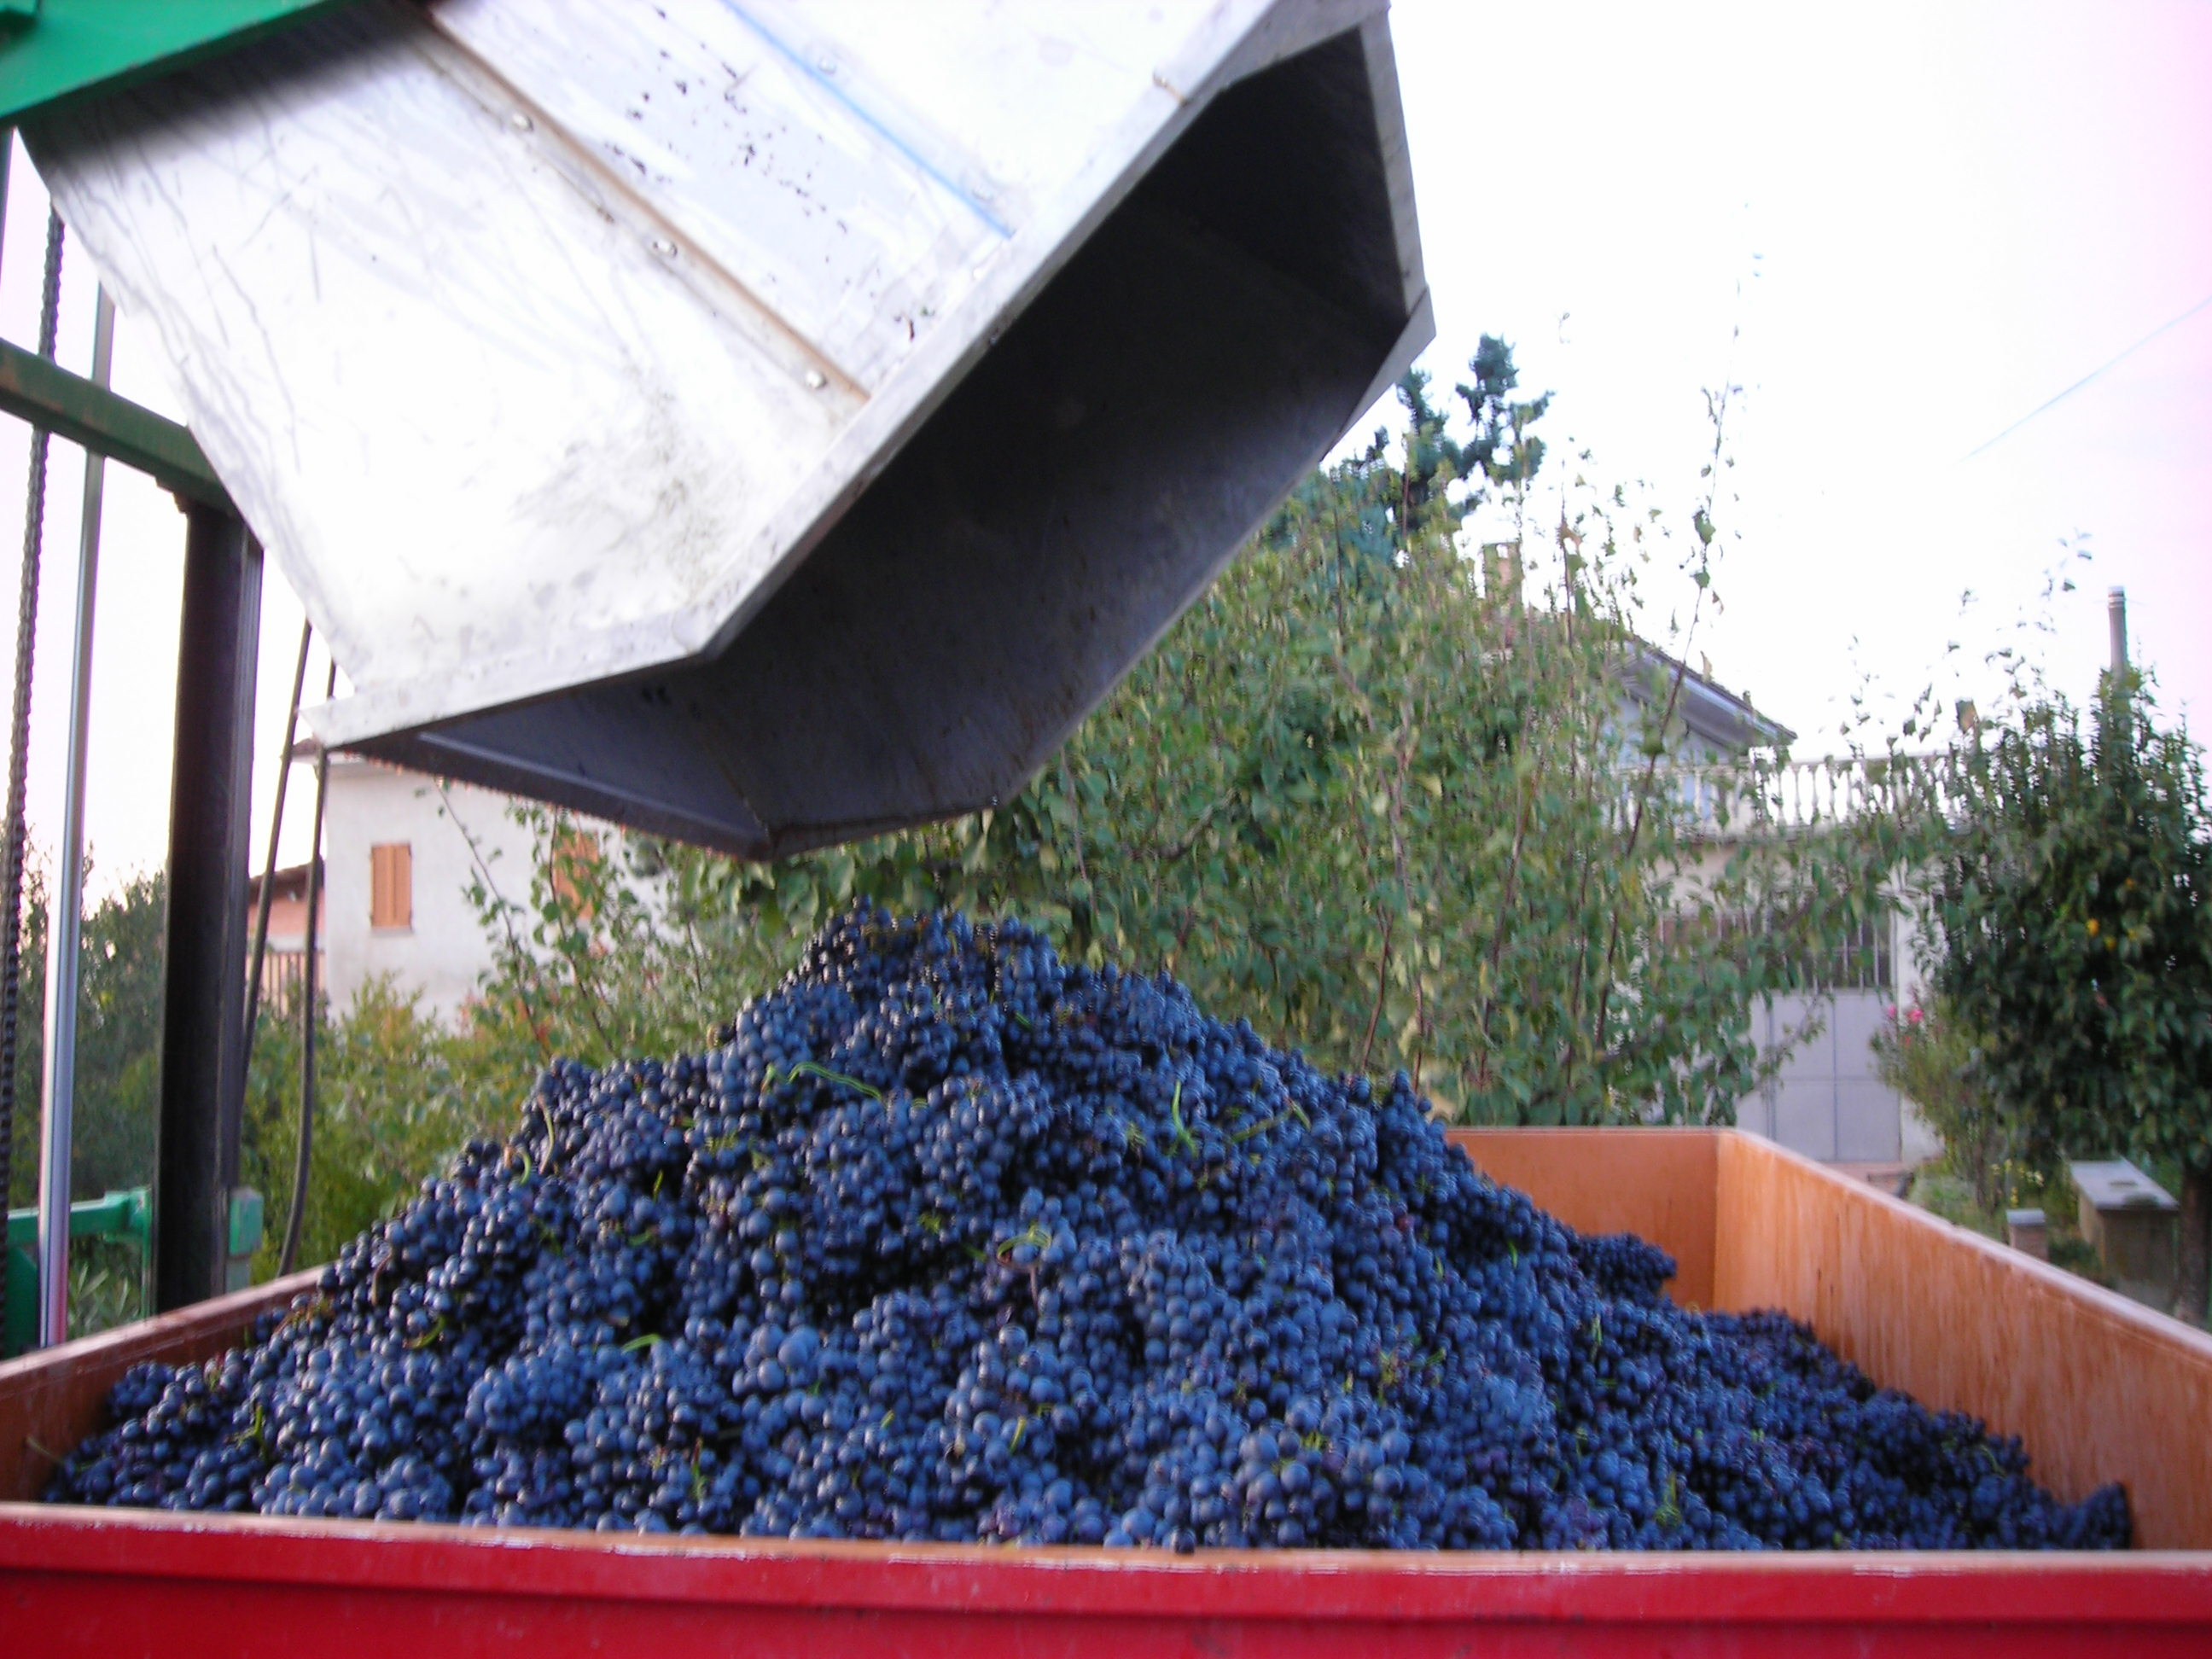 grapes-unloading